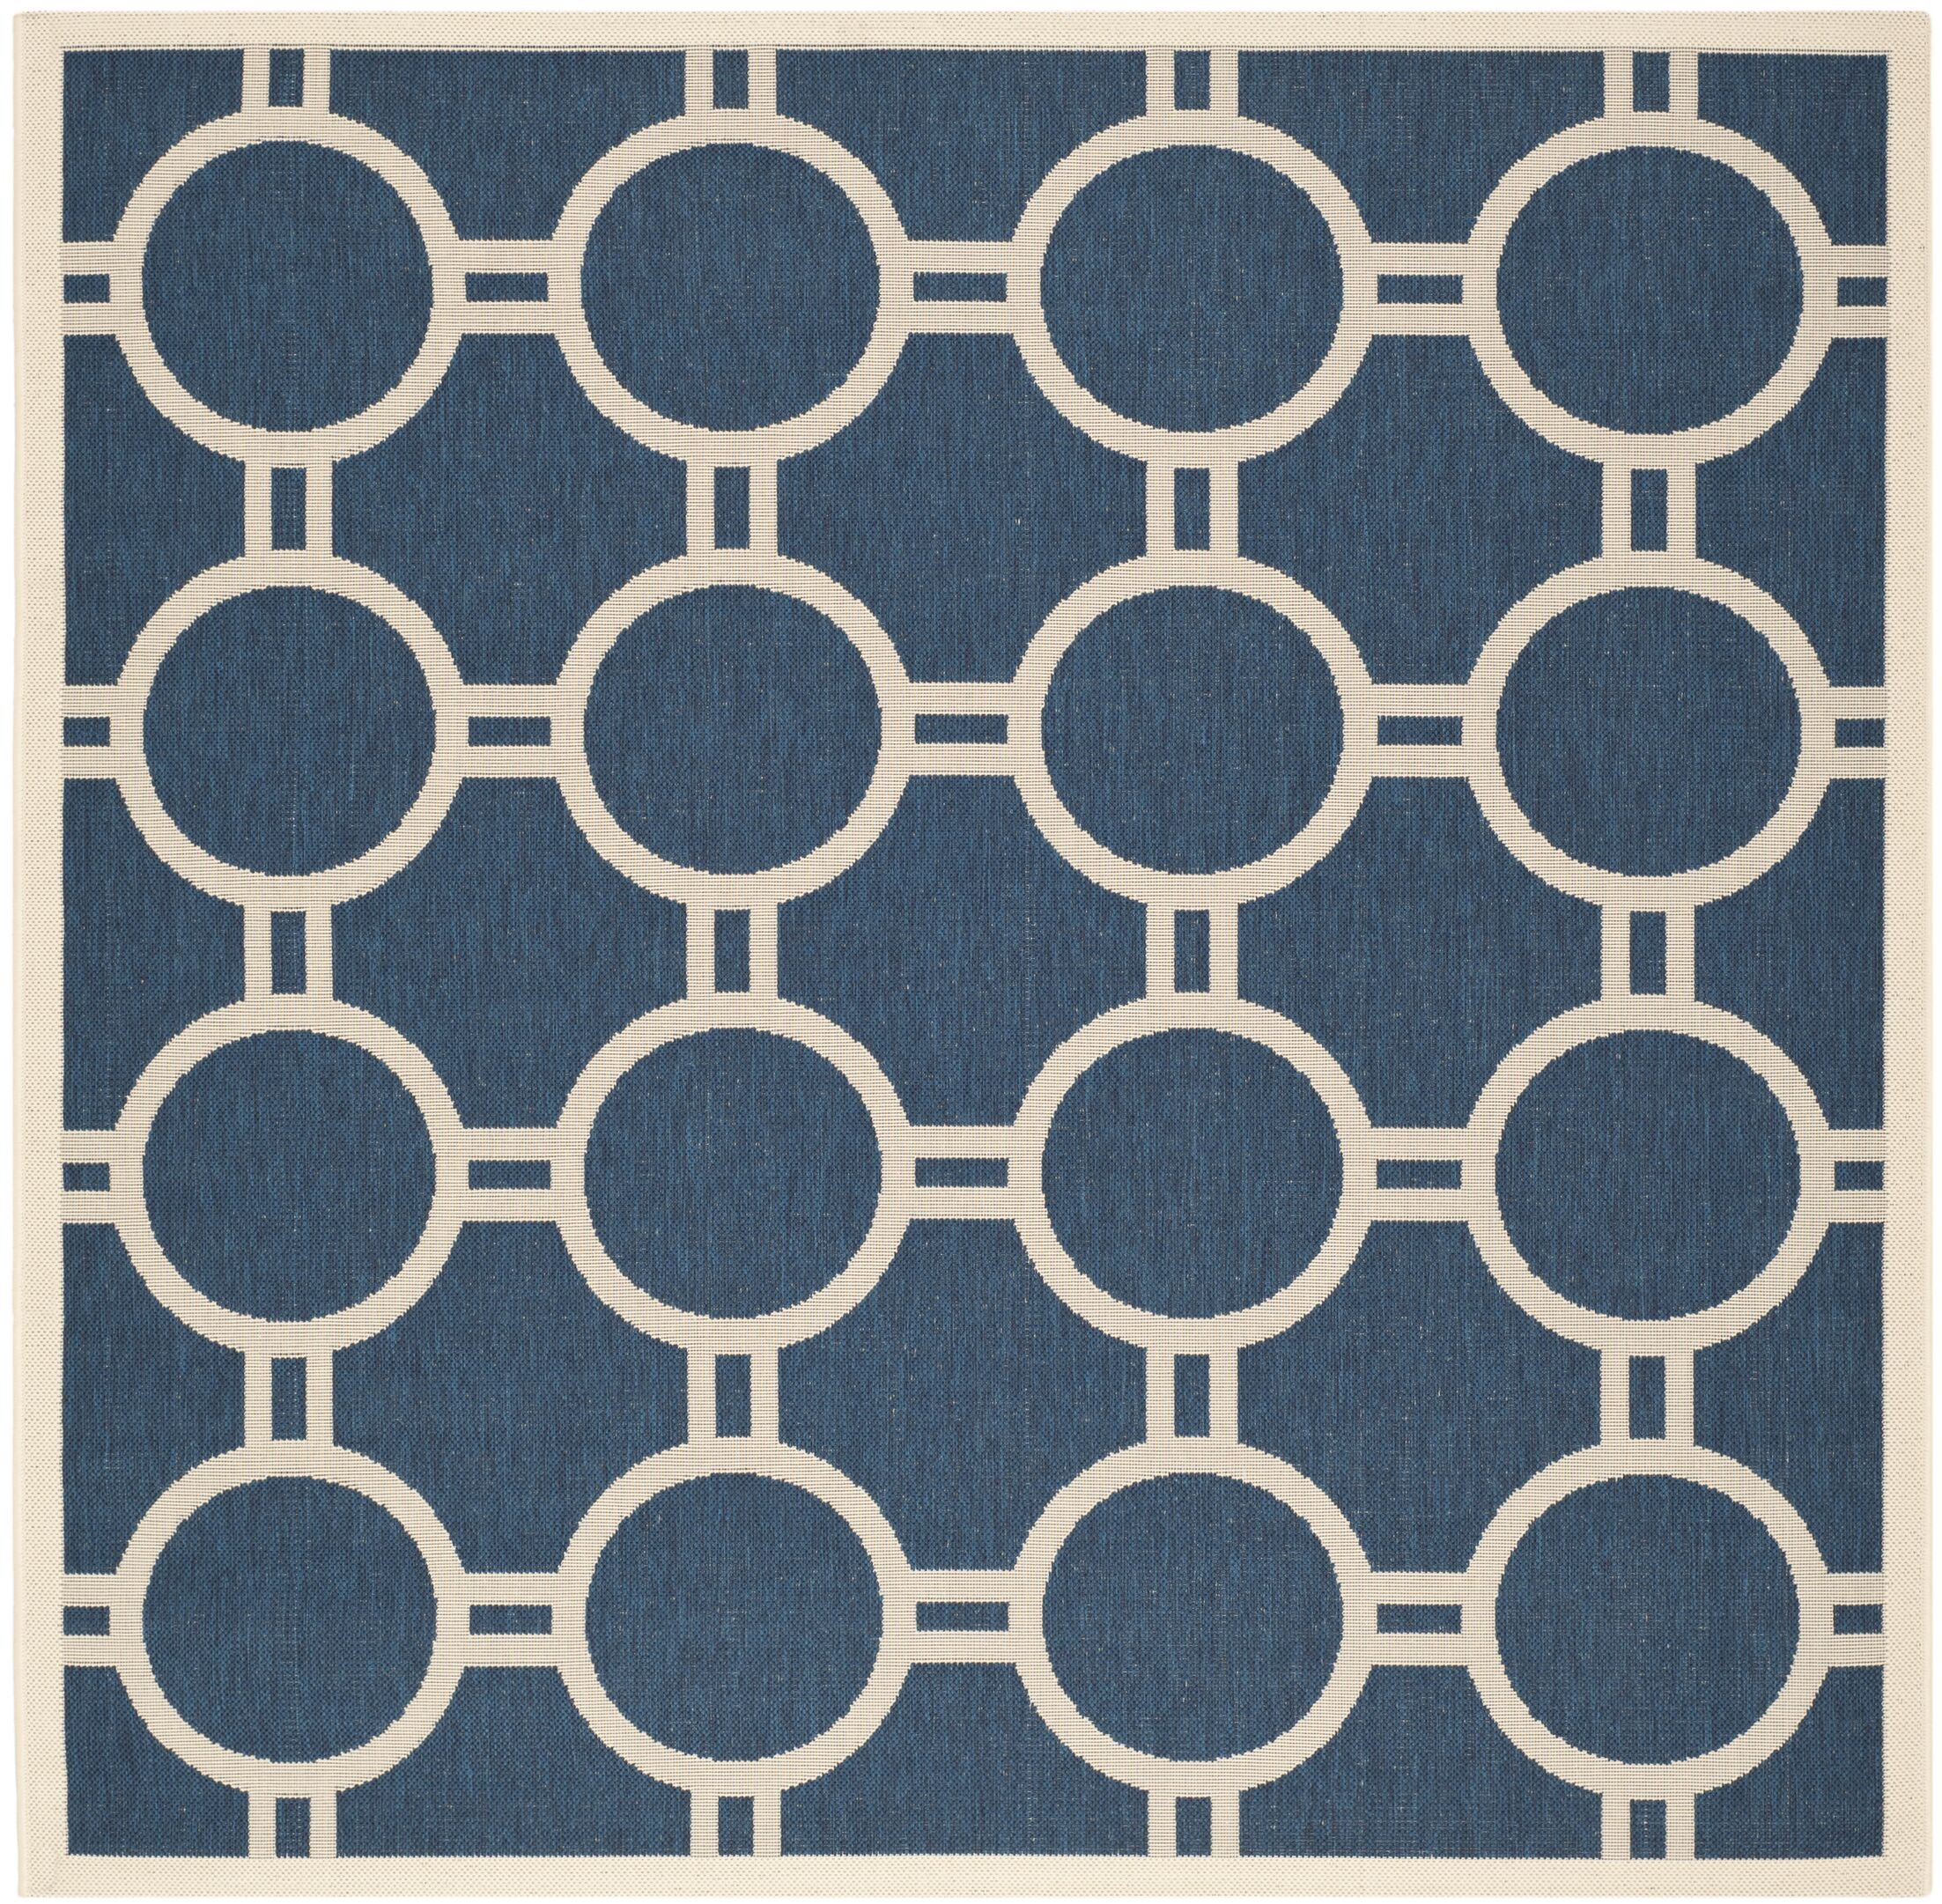 Jefferson Place Navy/Beige Outdoor Area Rug Rug Size: Square 6'7